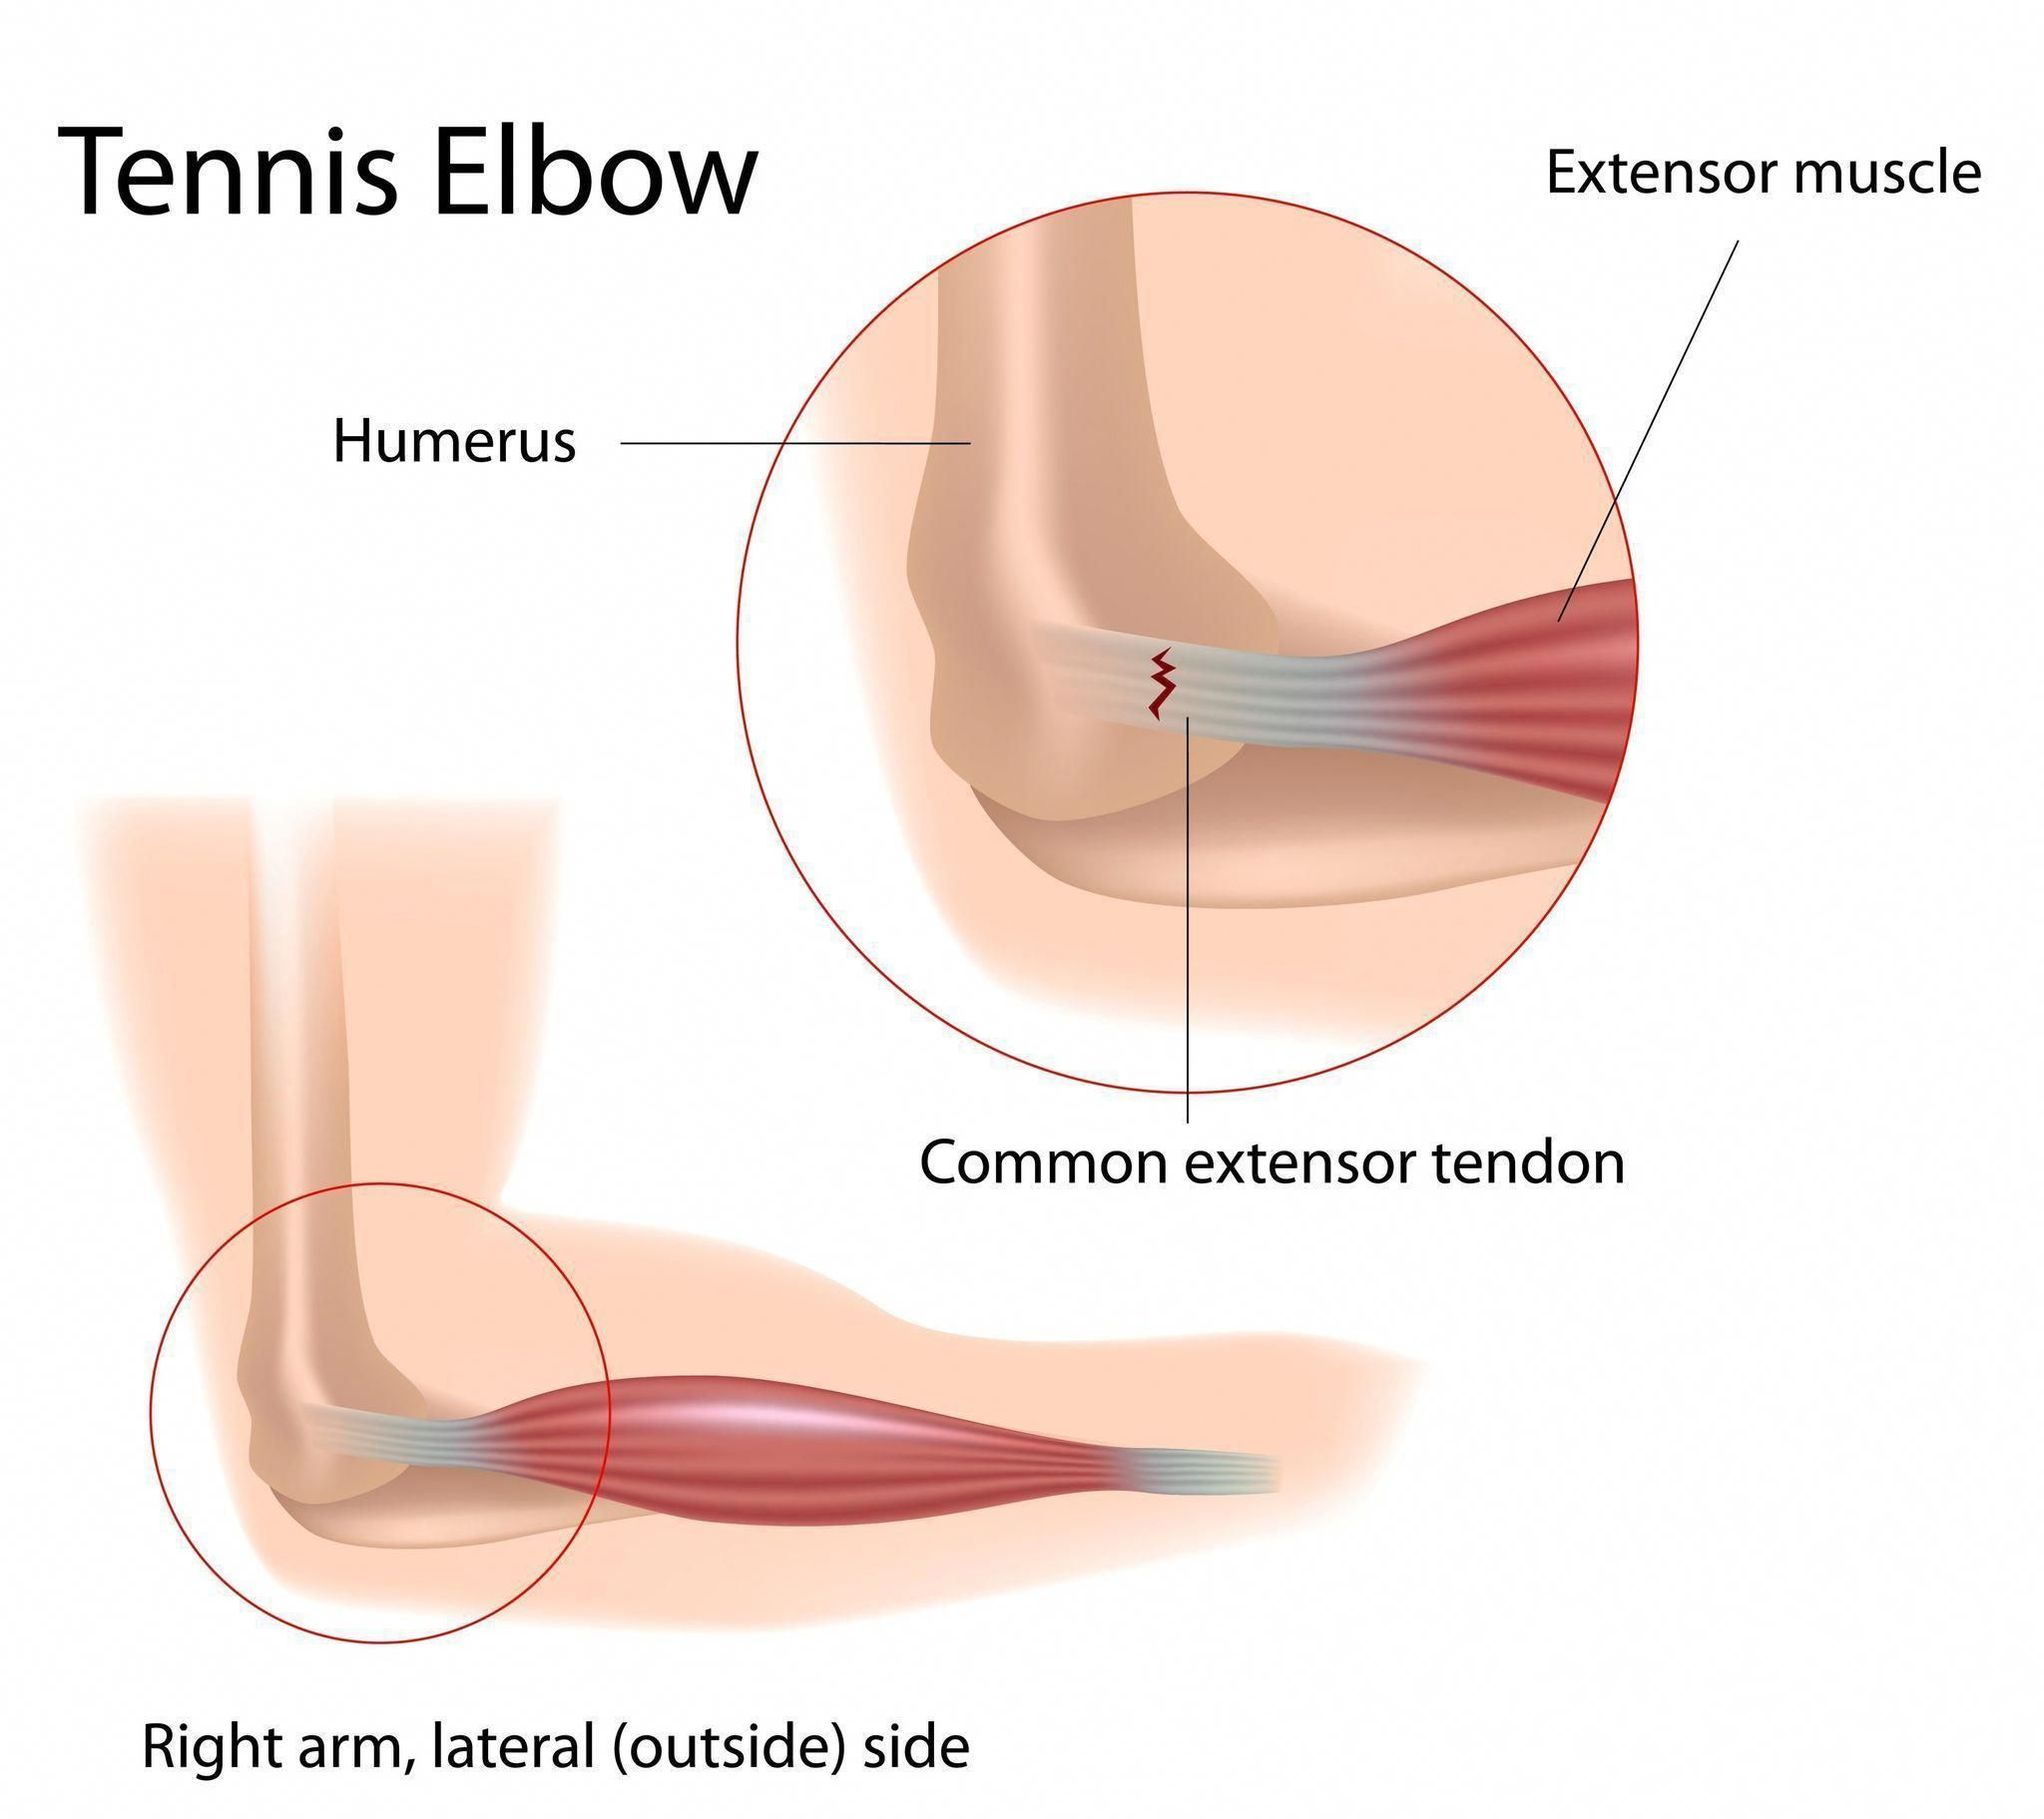 tennis elbow is a common term for a condition caused by overuse of arm forearm and hand muscles that results in elbow pain you don t have to play tennis  [ 2048 x 1823 Pixel ]